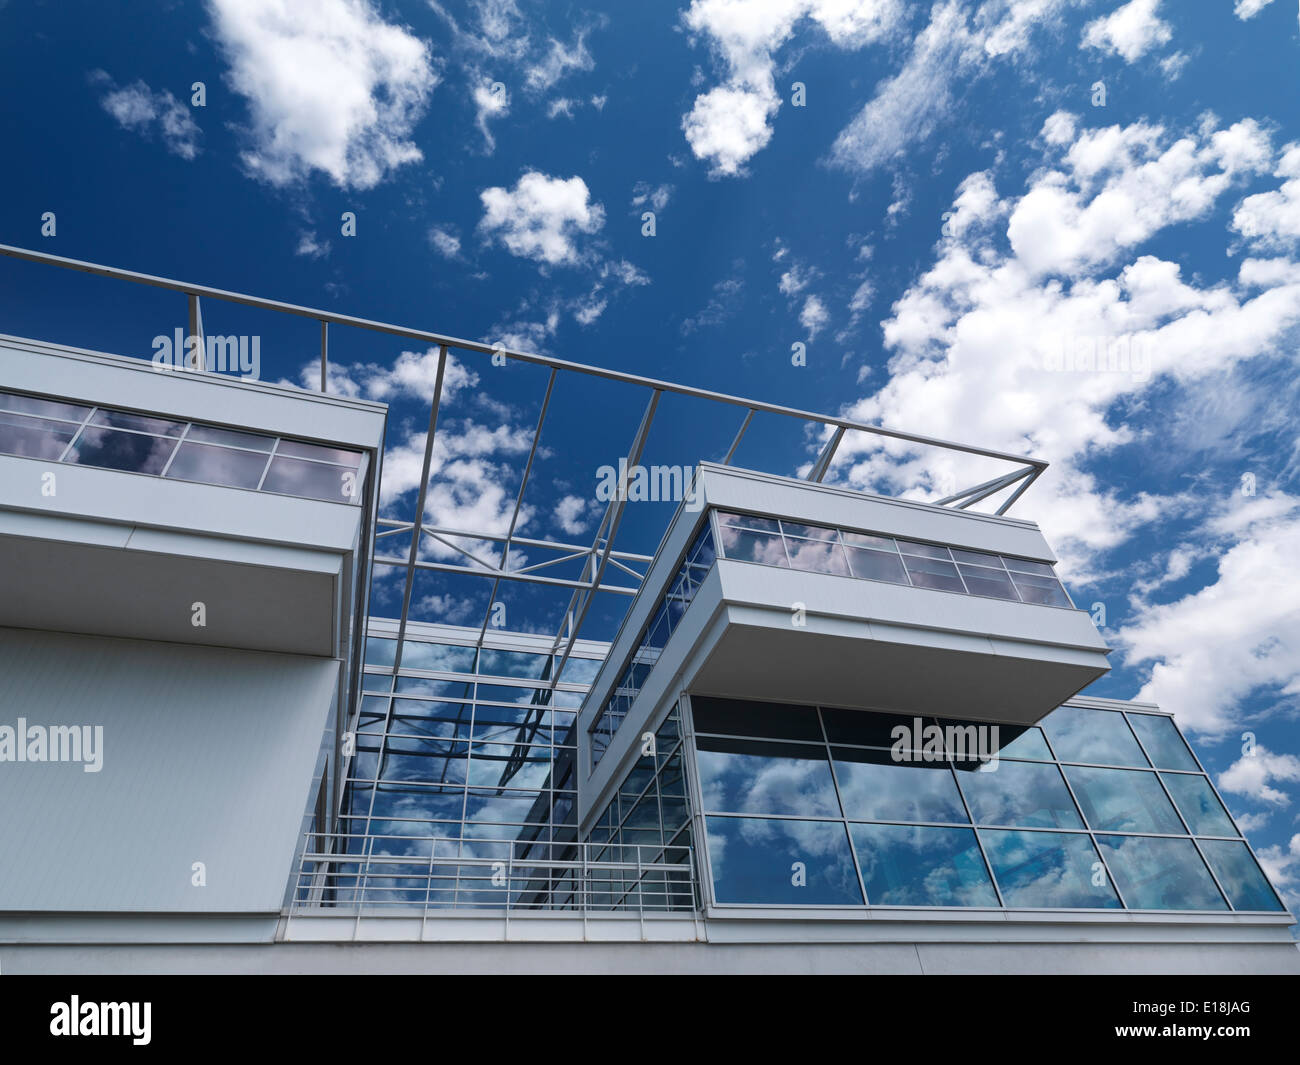 Ontario Association of Architects building abstract detail under blue sky in Toronto, Ontario, Canada. - Stock Image